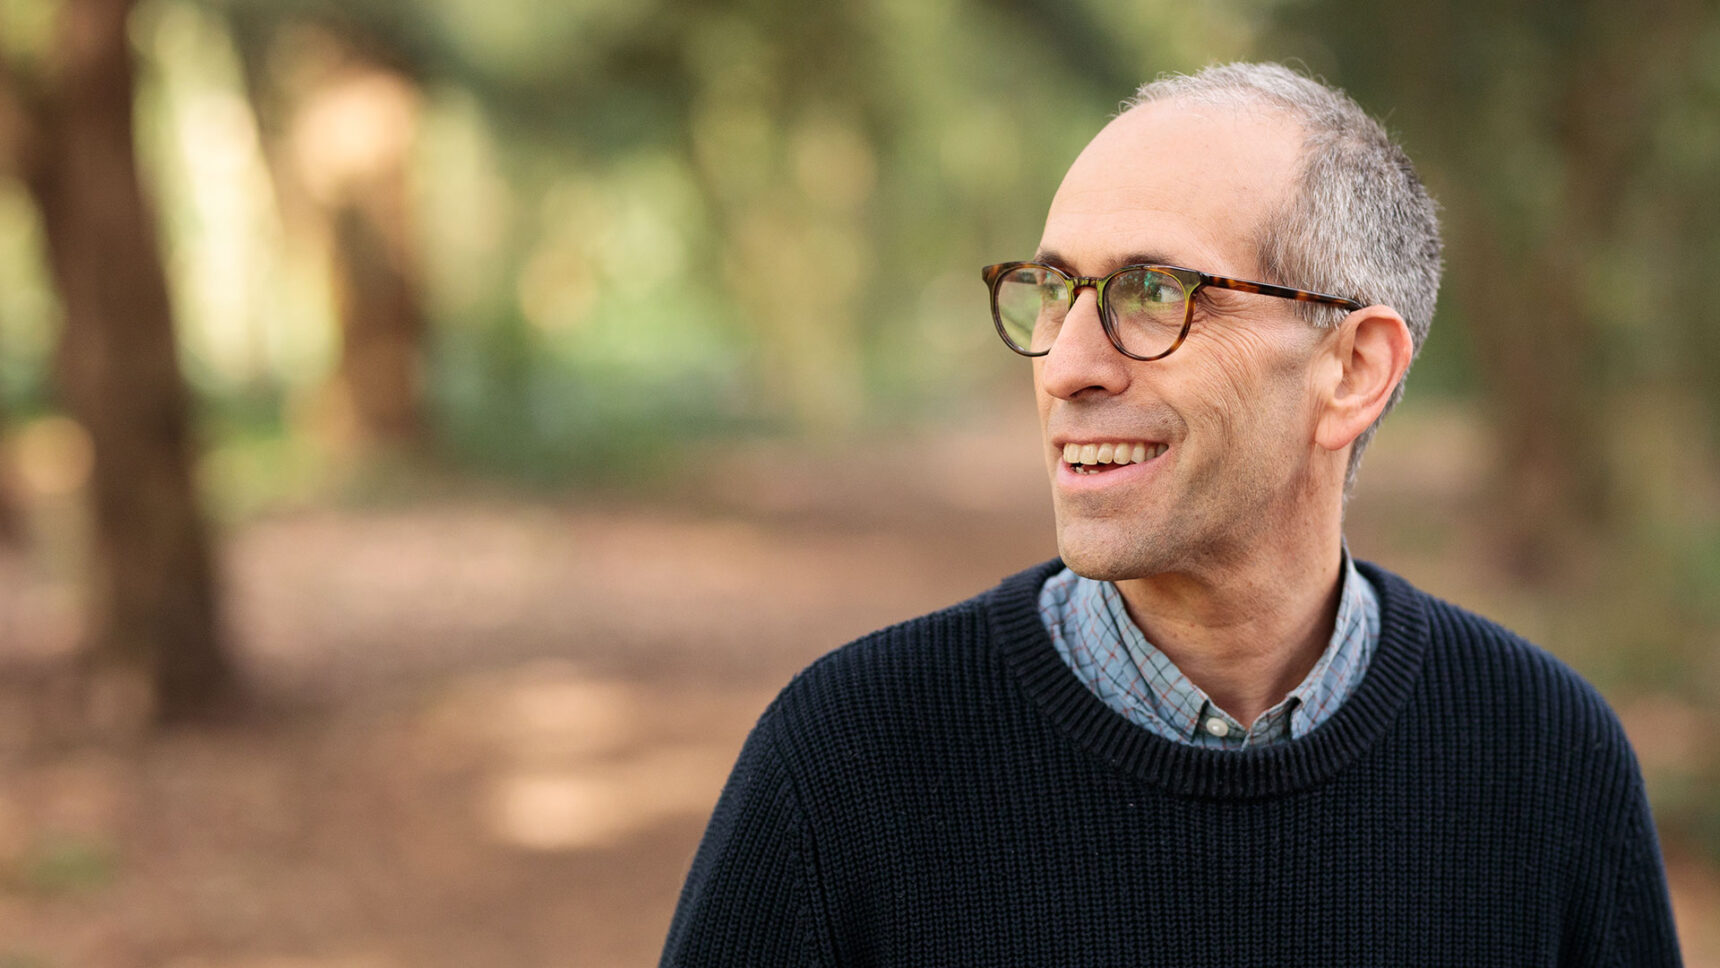 The zoologist Arik Kershenbaum of the University of Cambridge discusses convergent evolution, animal communications and why life throughout the universe may have certain common features.